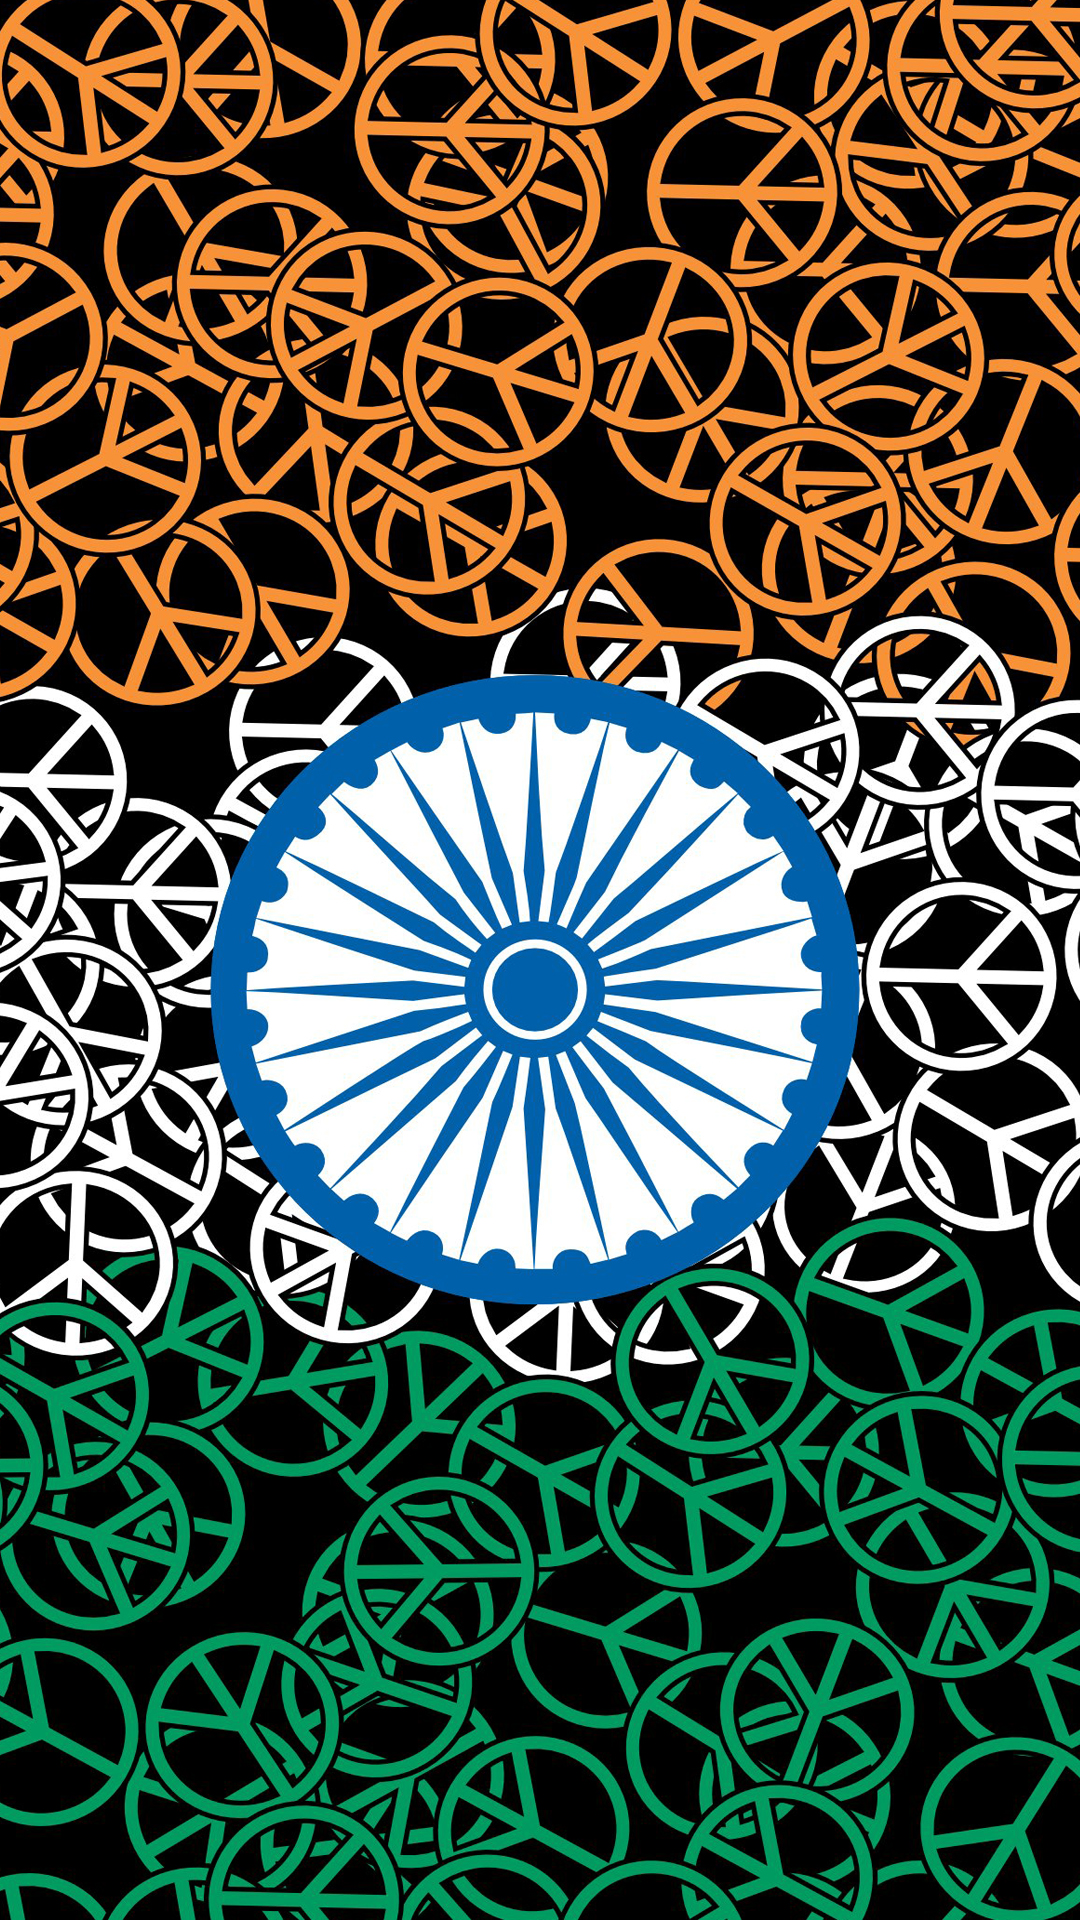 India Flag for Mobile Phone Wallpaper 05 of 17 Abstract Flag with Peace Symbol HD Wallpapers ...